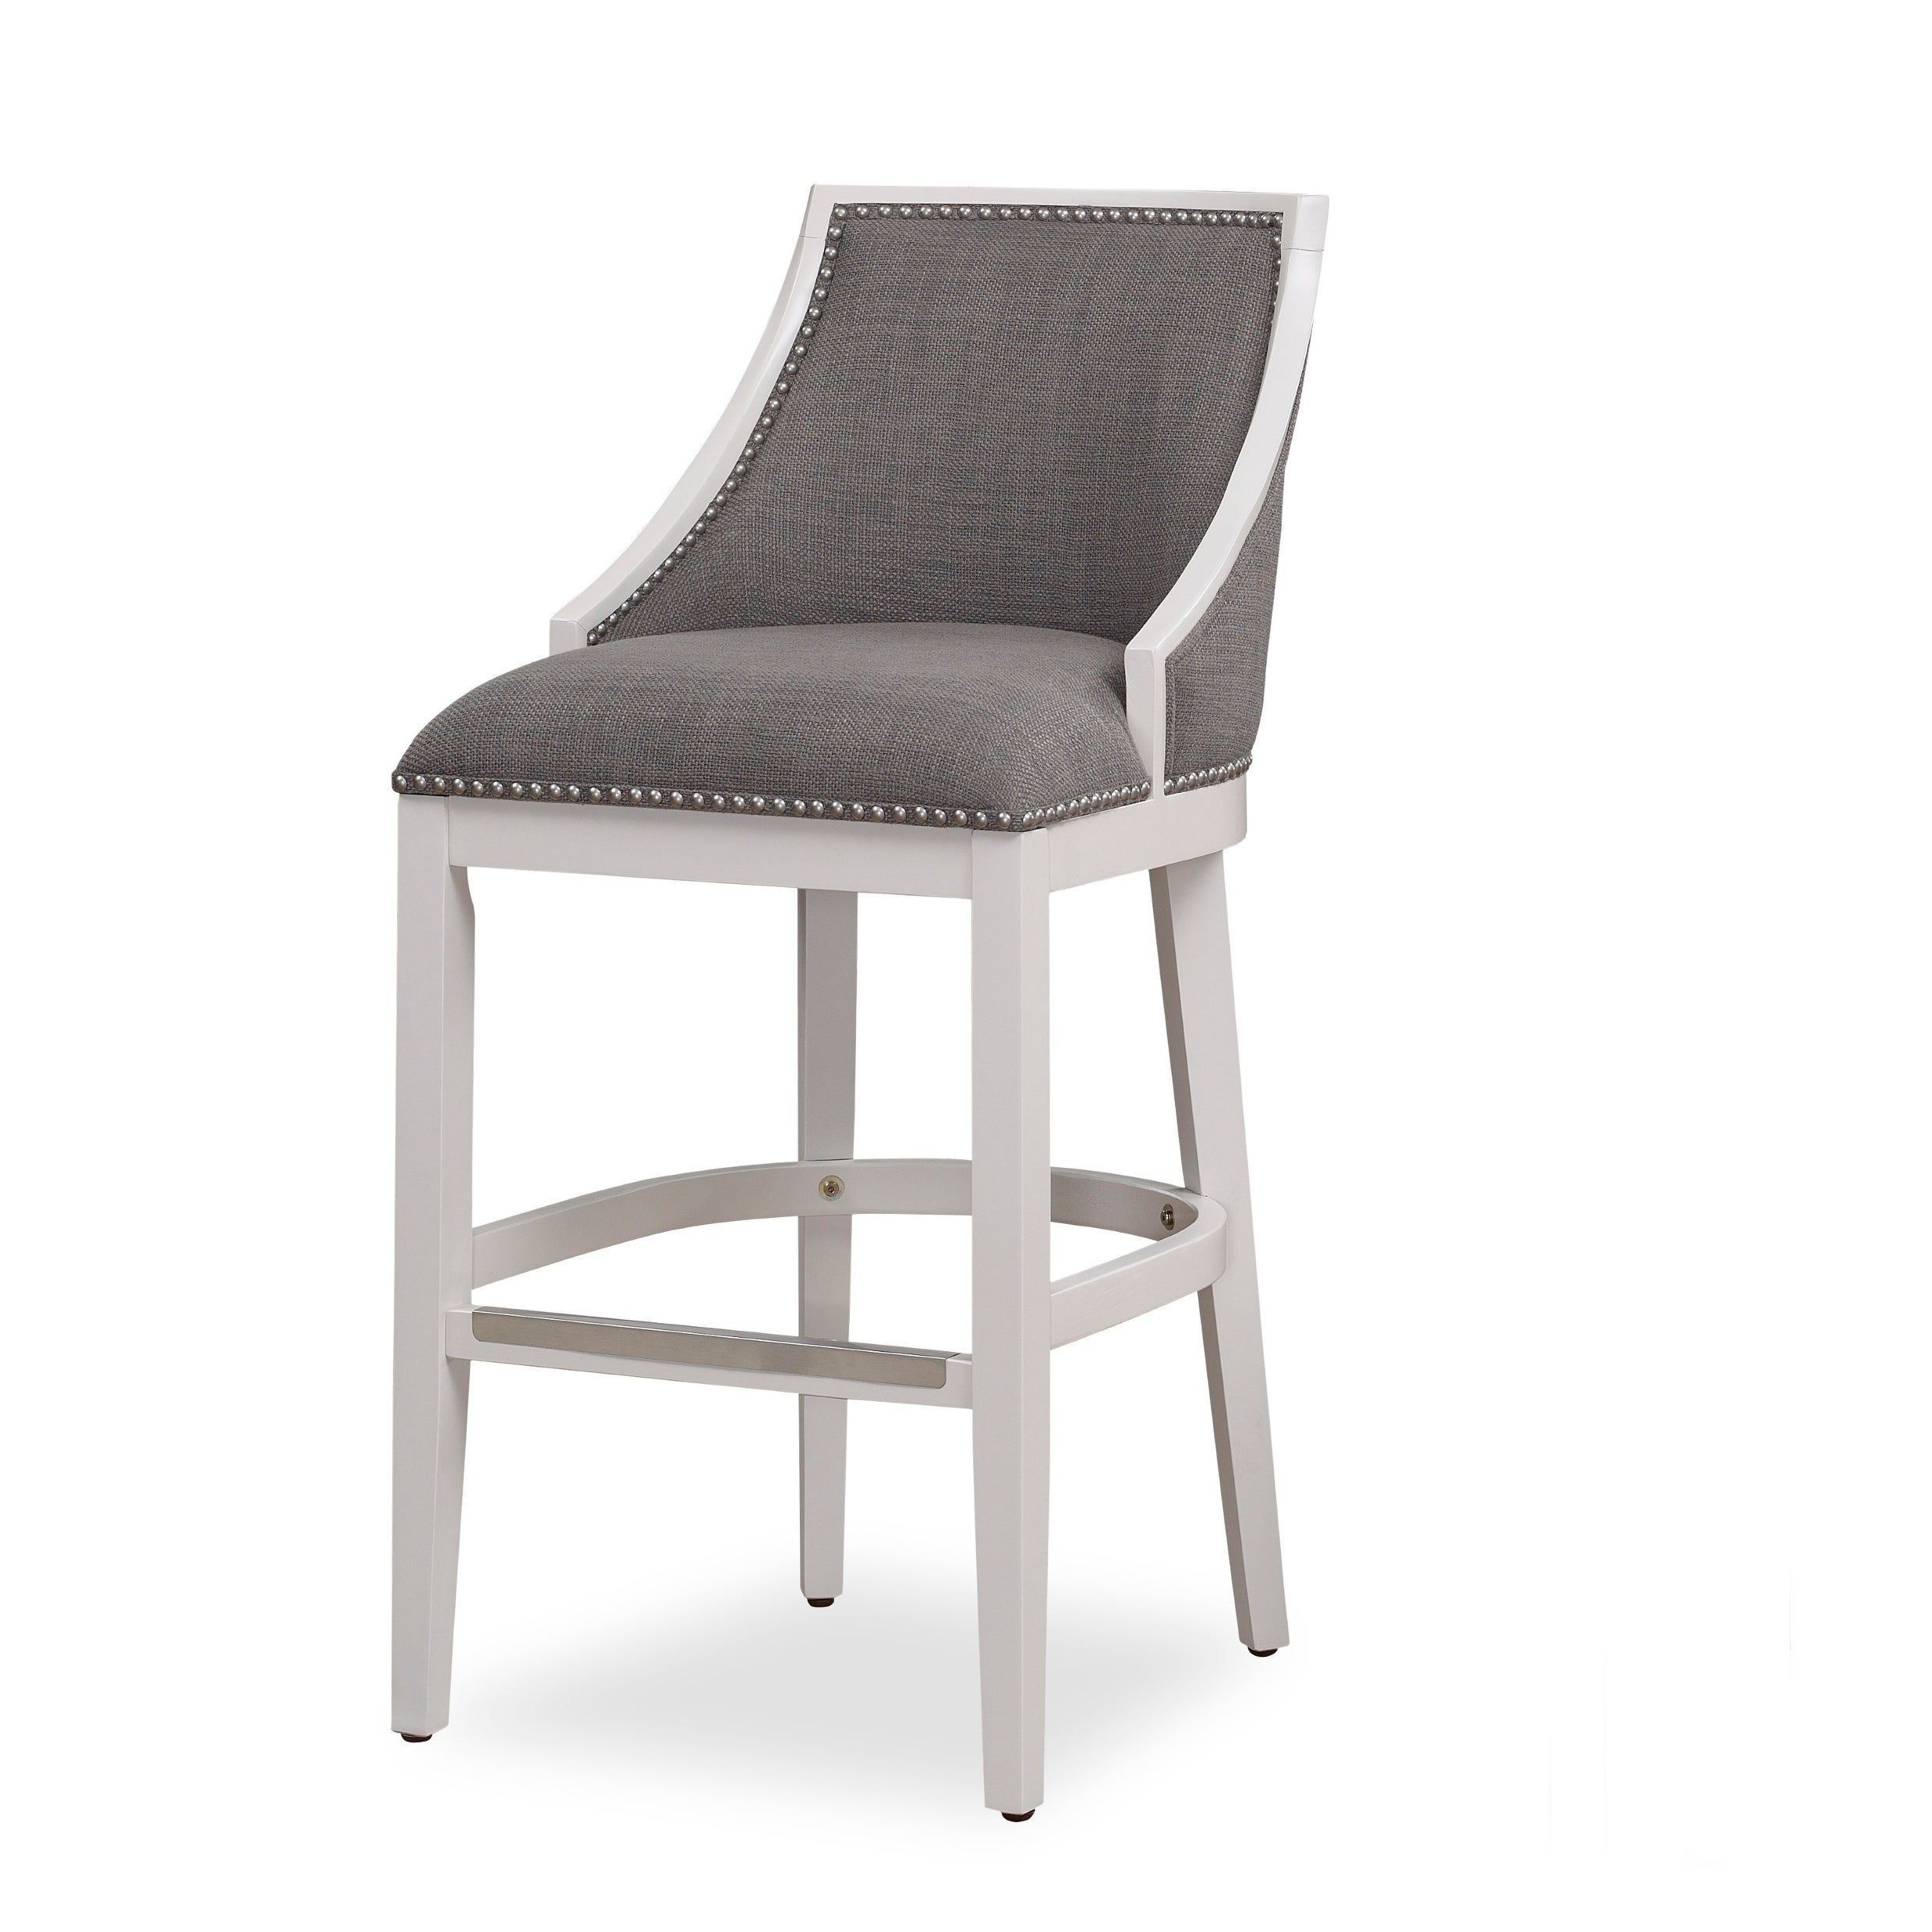 Fine Lawrence White Counter Height Stool By Greyson Living Beige Onthecornerstone Fun Painted Chair Ideas Images Onthecornerstoneorg